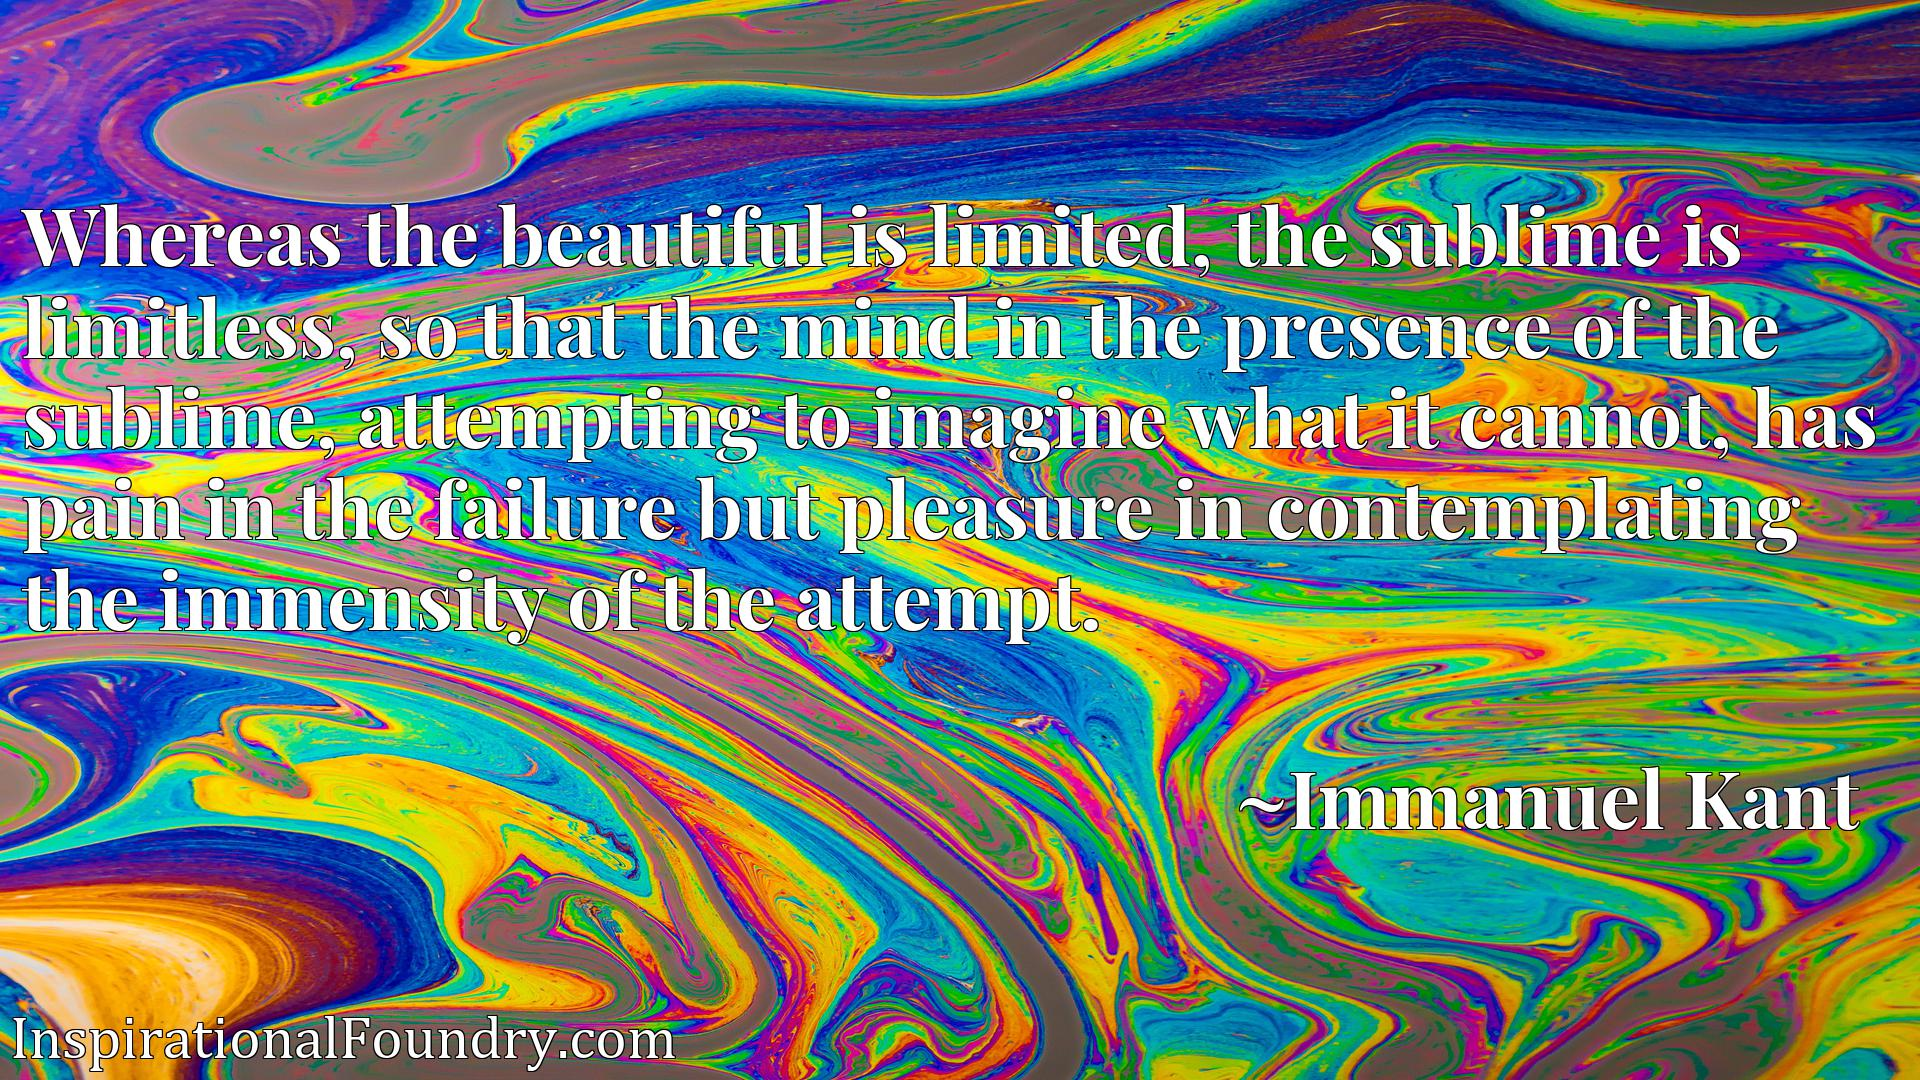 Whereas the beautiful is limited, the sublime is limitless, so that the mind in the presence of the sublime, attempting to imagine what it cannot, has pain in the failure but pleasure in contemplating the immensity of the attempt.